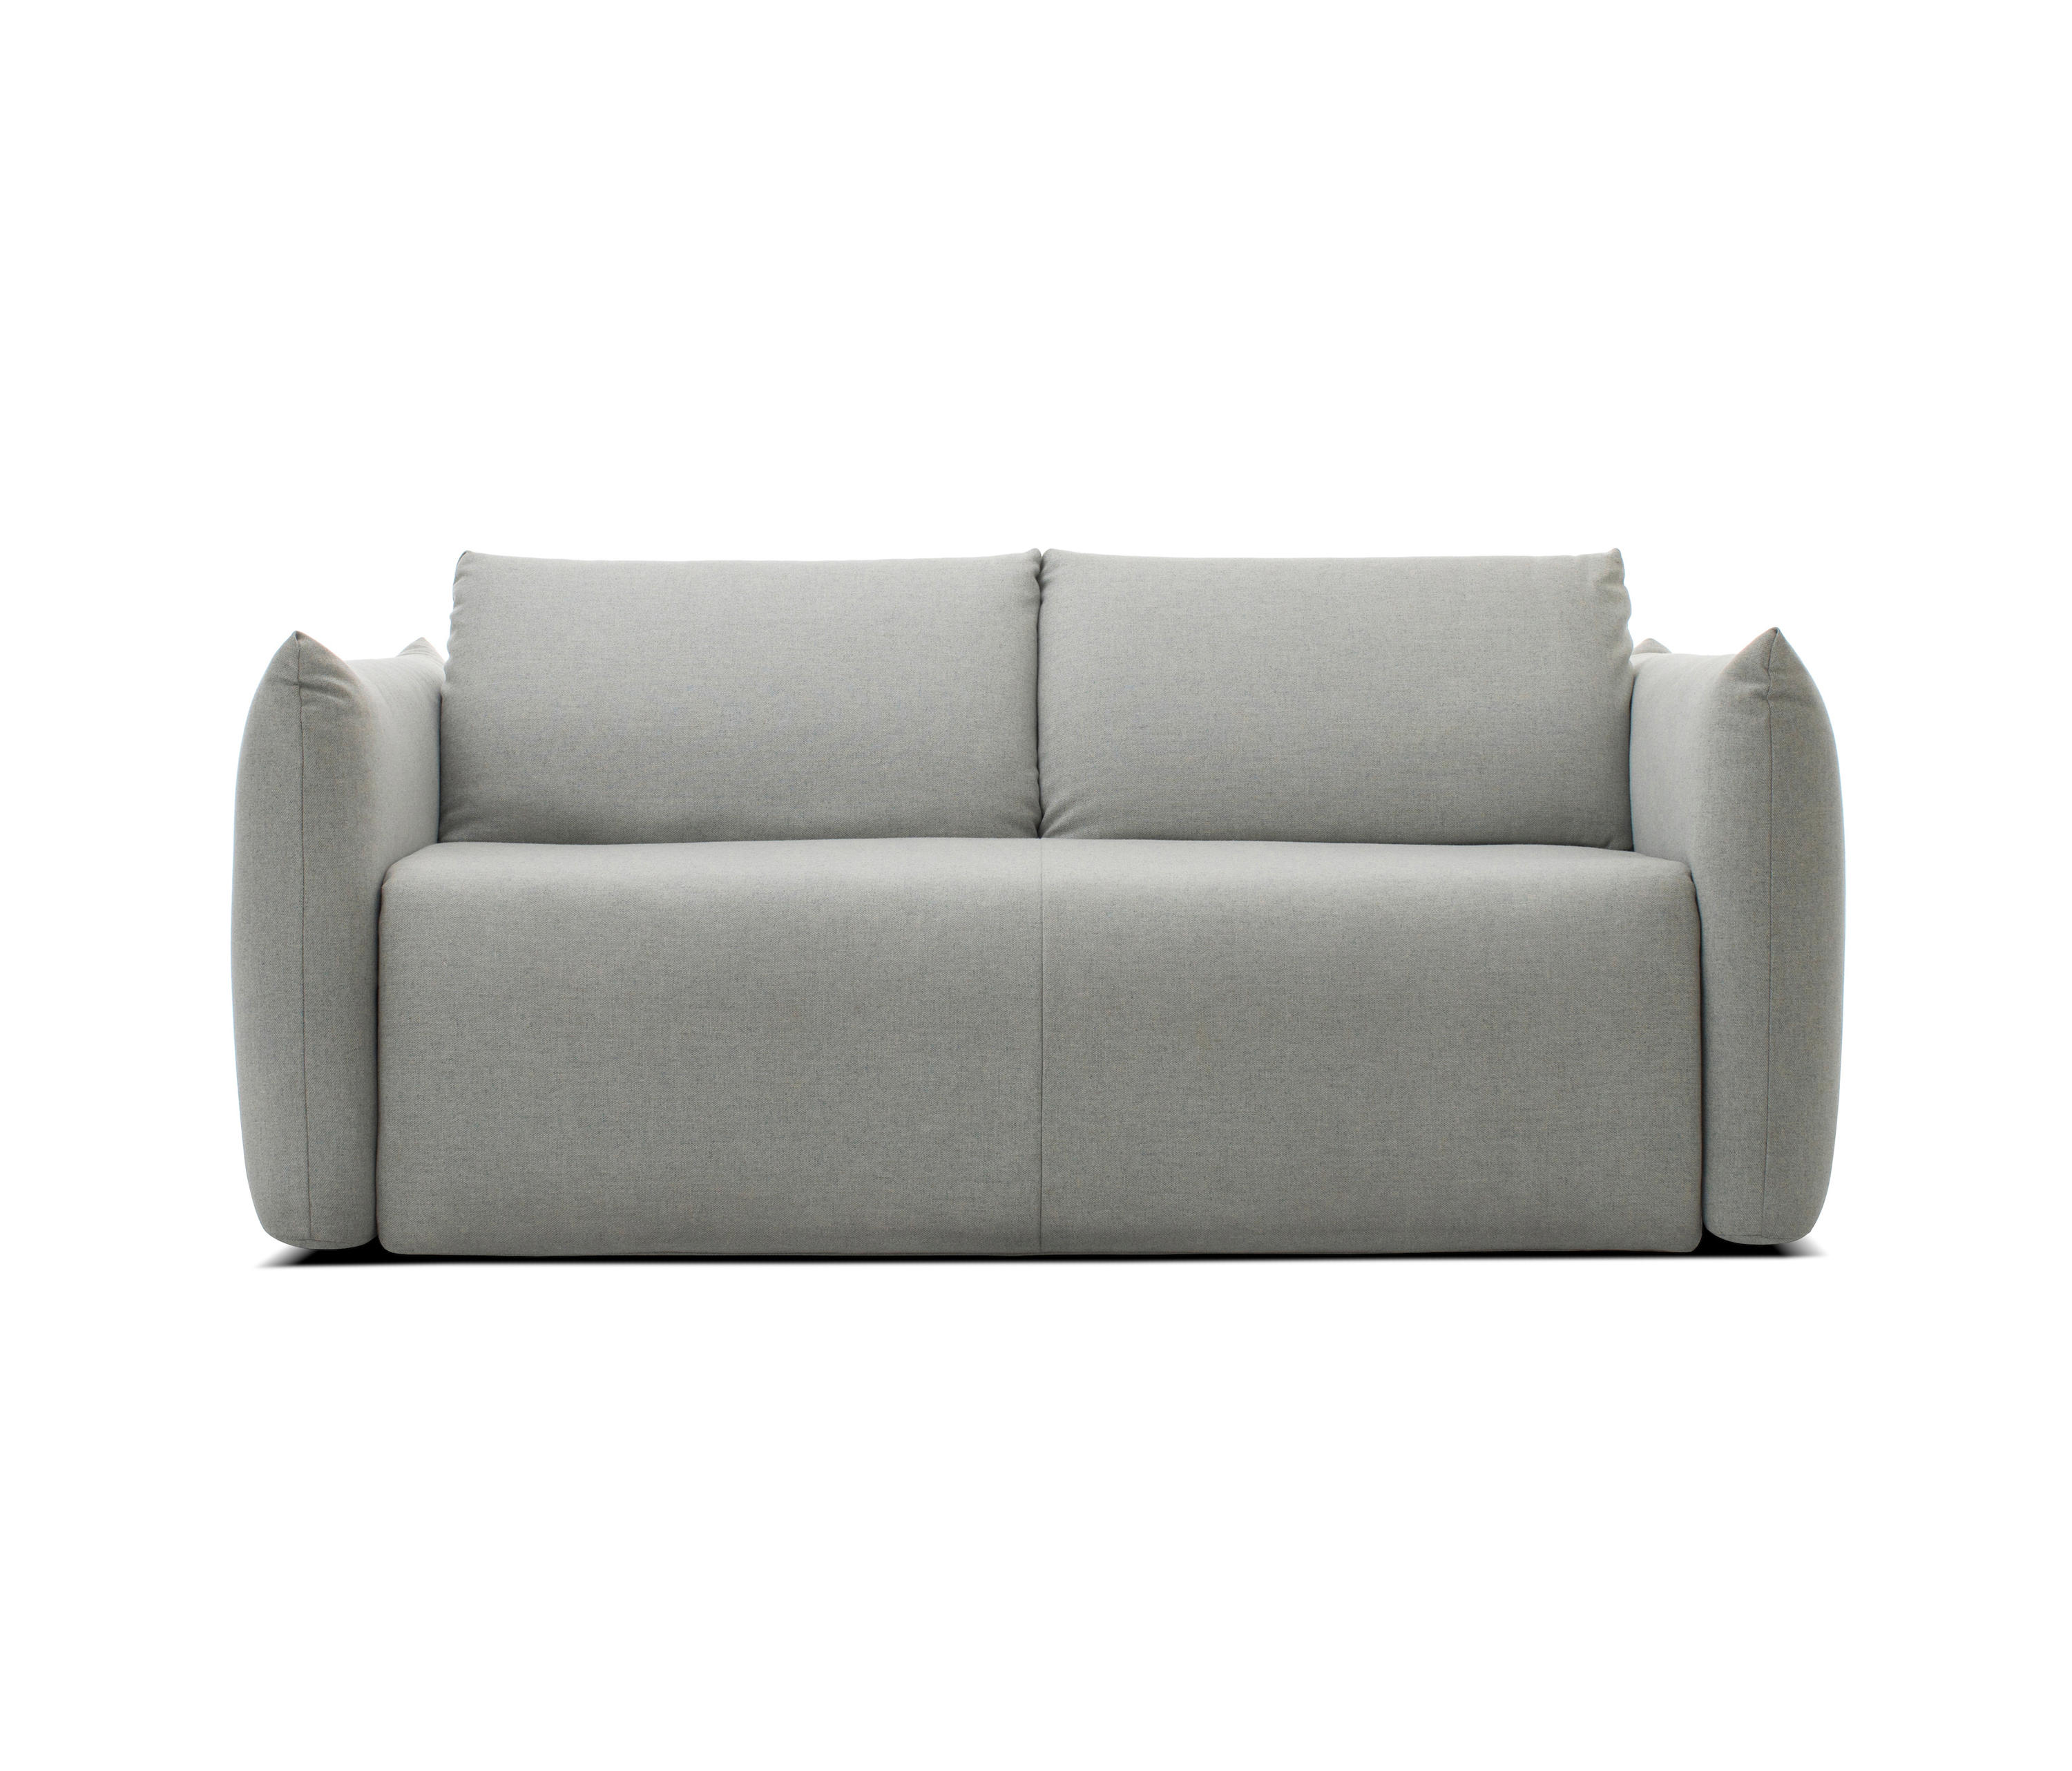 Luna Sofa Bed Sofas From Extraform Architonic